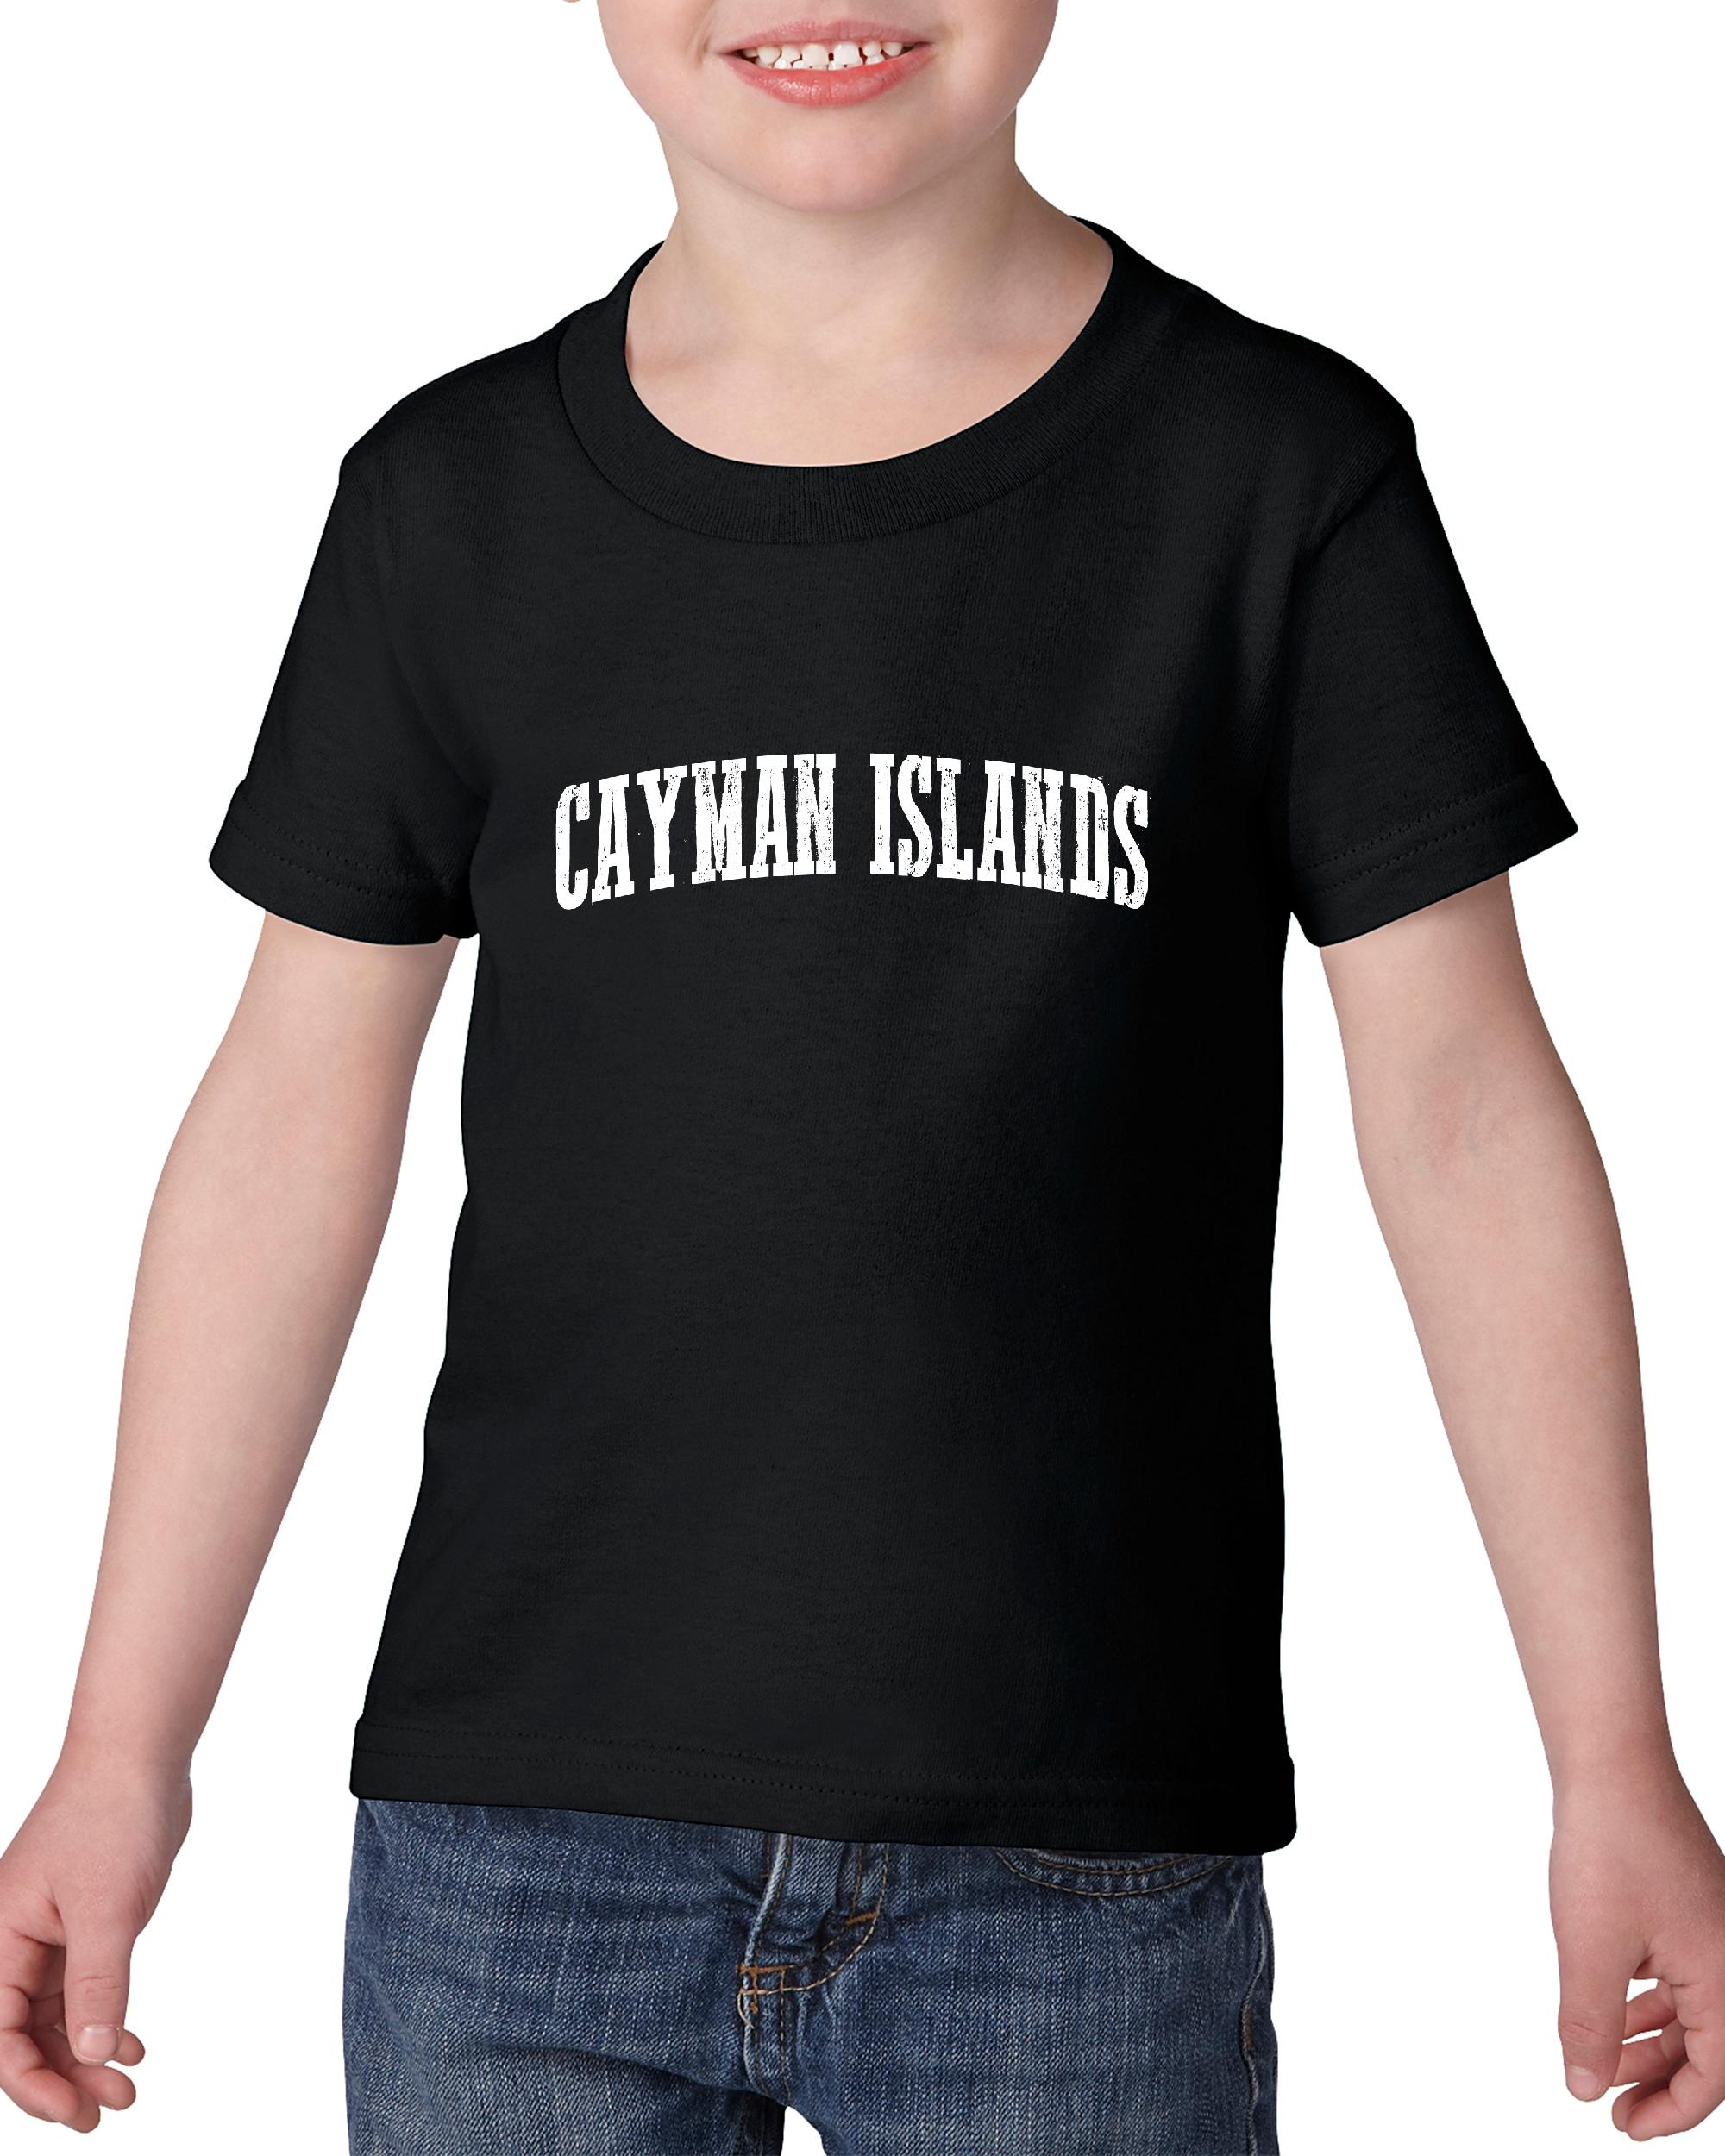 Artix What to do in Cayman Islands? Travel Time Map Guide Flights Top 10 Things To Do Heavy Cotton Toddler Kids T-Shirt Tee Clothing